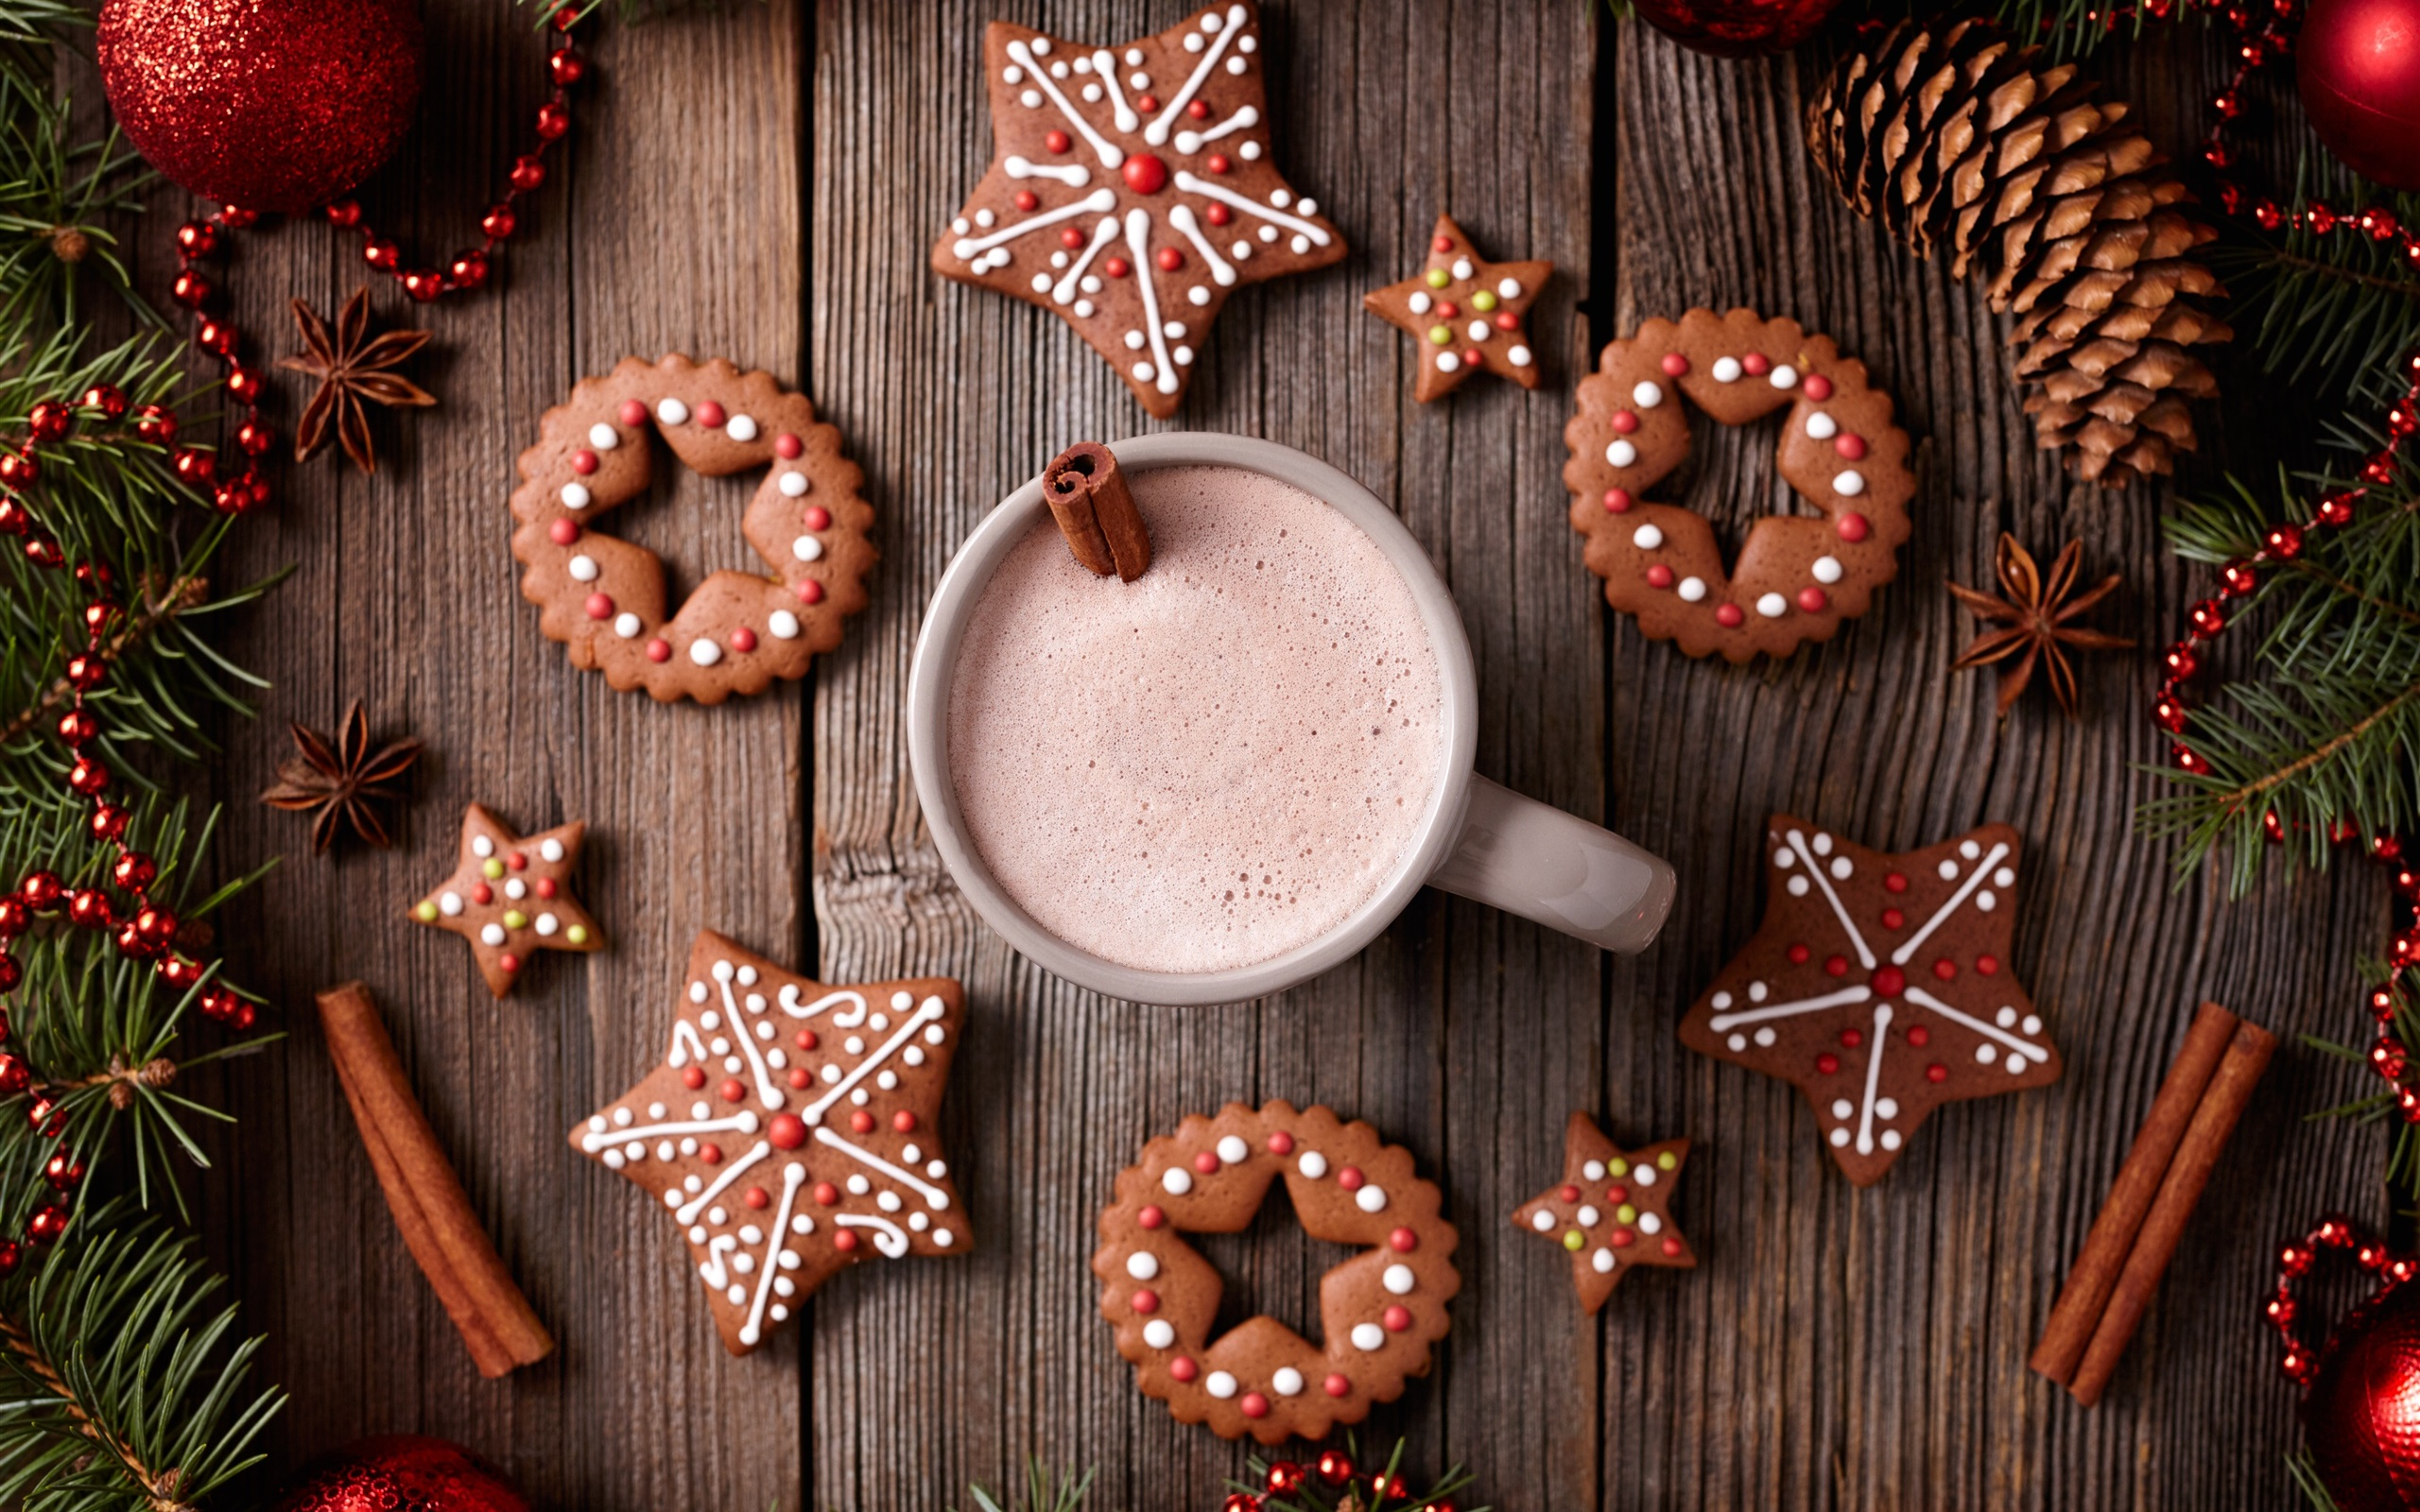 Wallpaper Merry Christmas Cookies Cup Drinks 2560x1600 Hd Picture Image